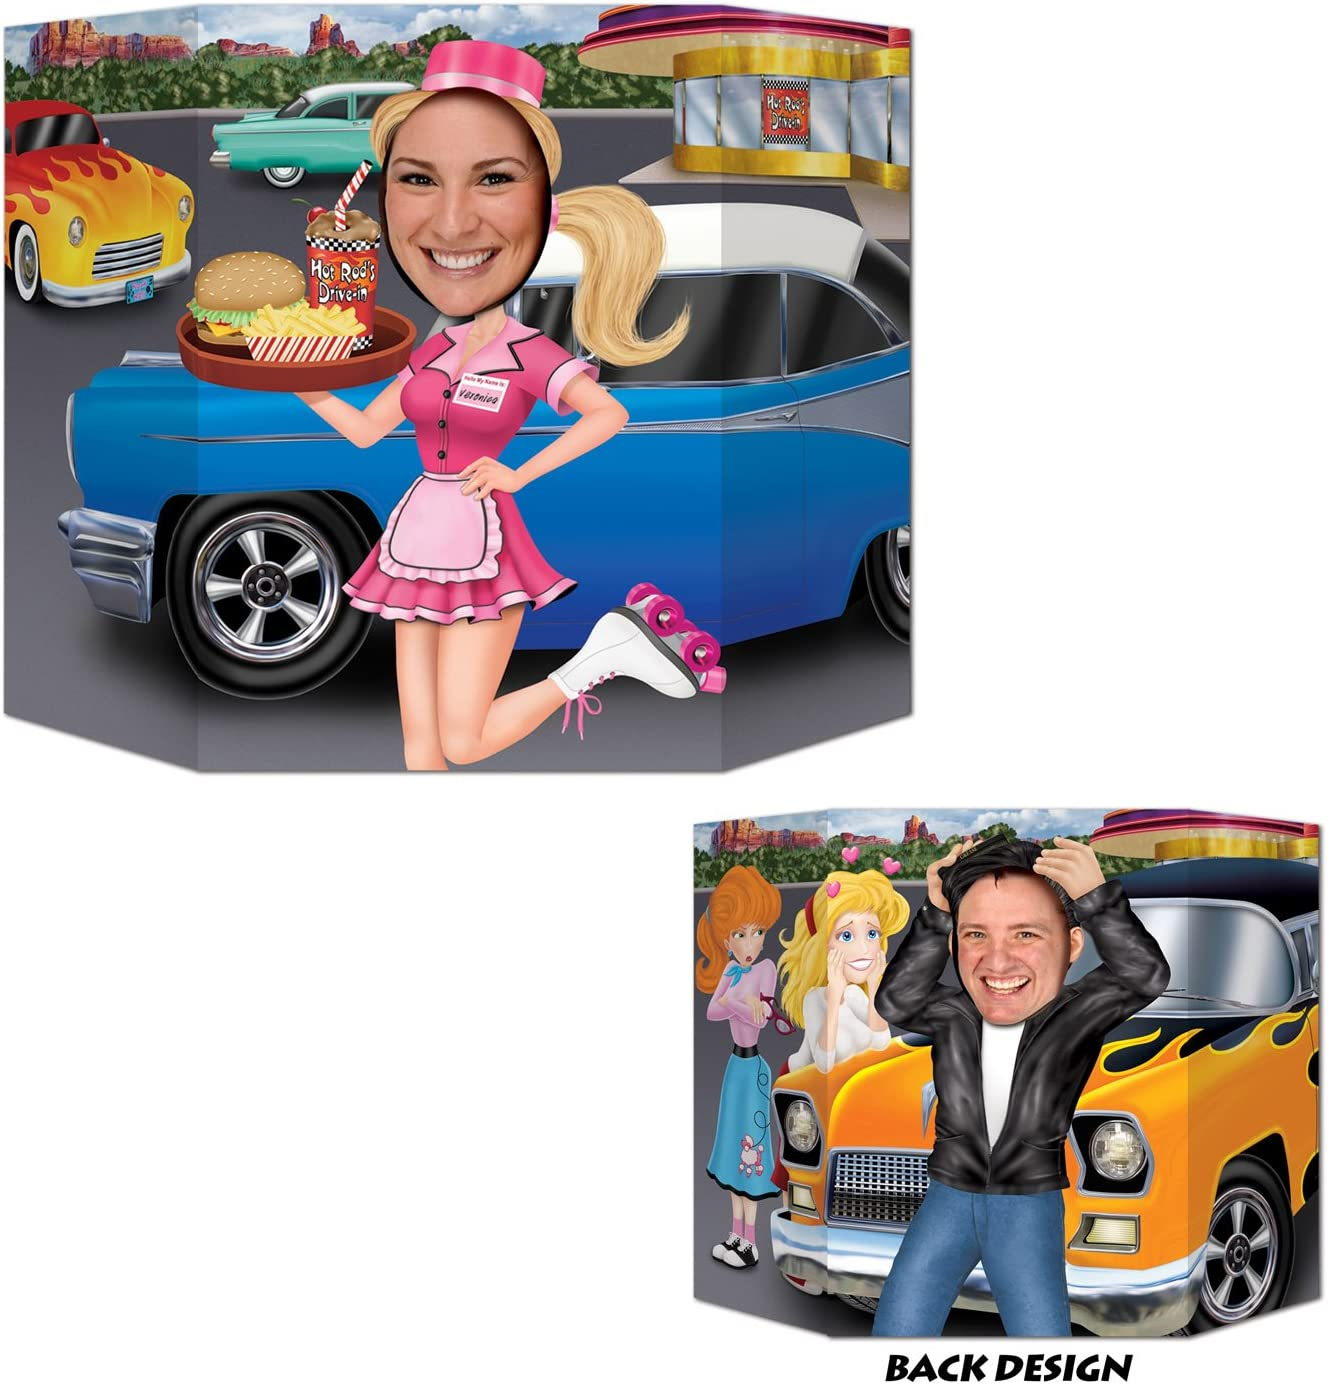 Car Hop/Greaser Photo Prop (1 side car hop; other side greaser) Party Accessory(1 count) (1/Pkg)